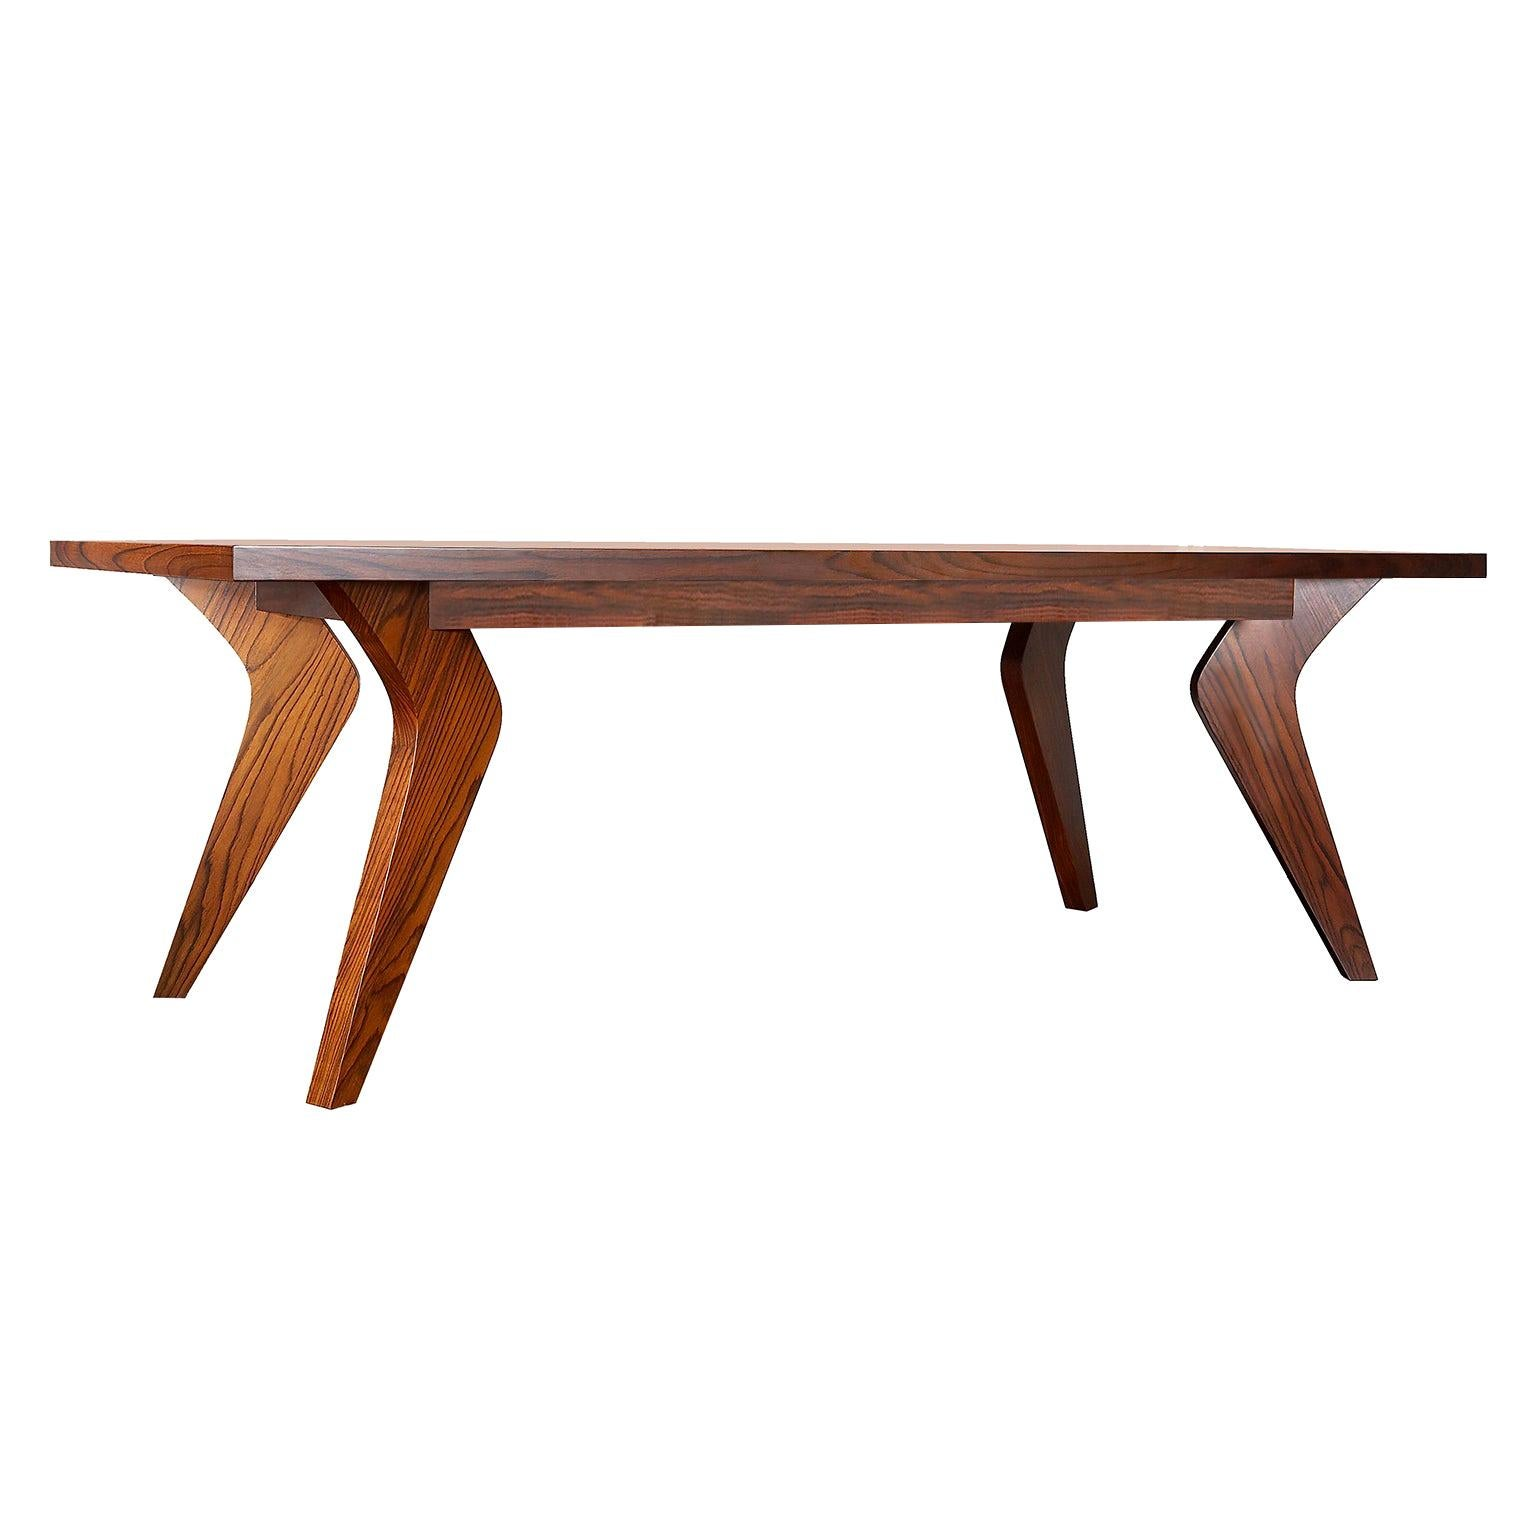 """Contemporary Handcrafted Dining Table """"Minoa"""" in Palisander Wood by Anaktae"""